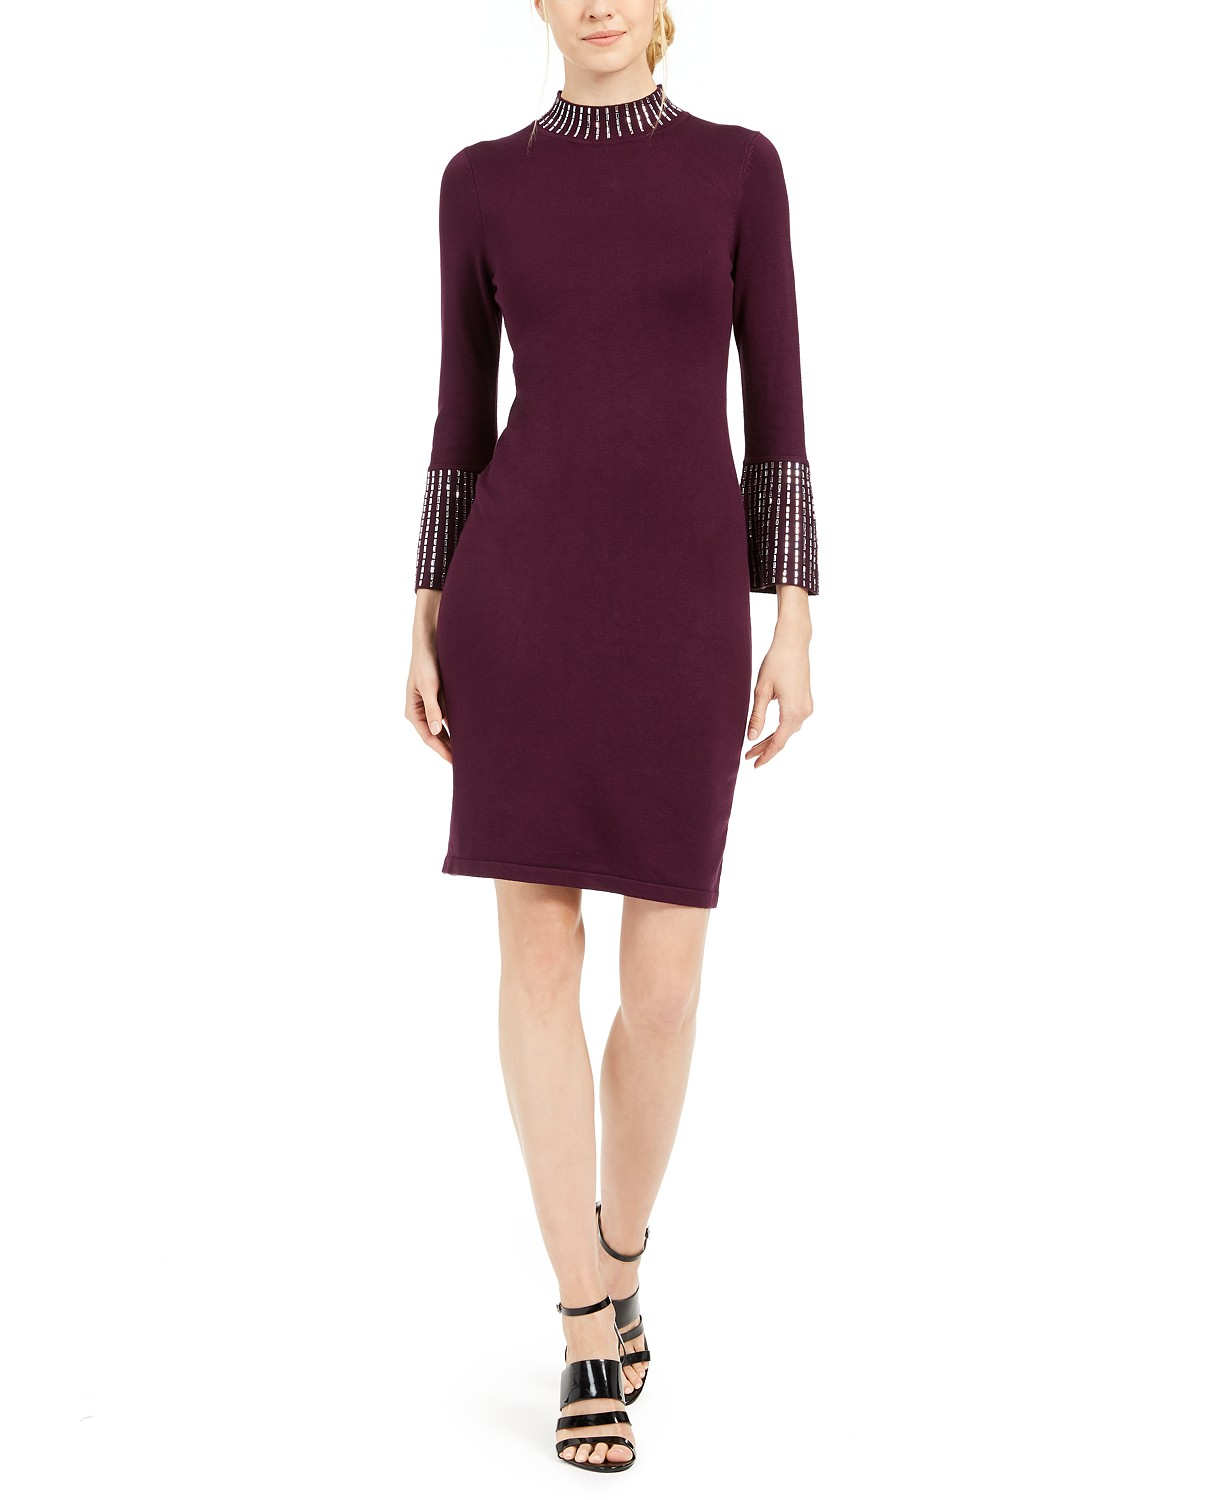 Woman in a burgundy Christmas party dress with white embellishment.